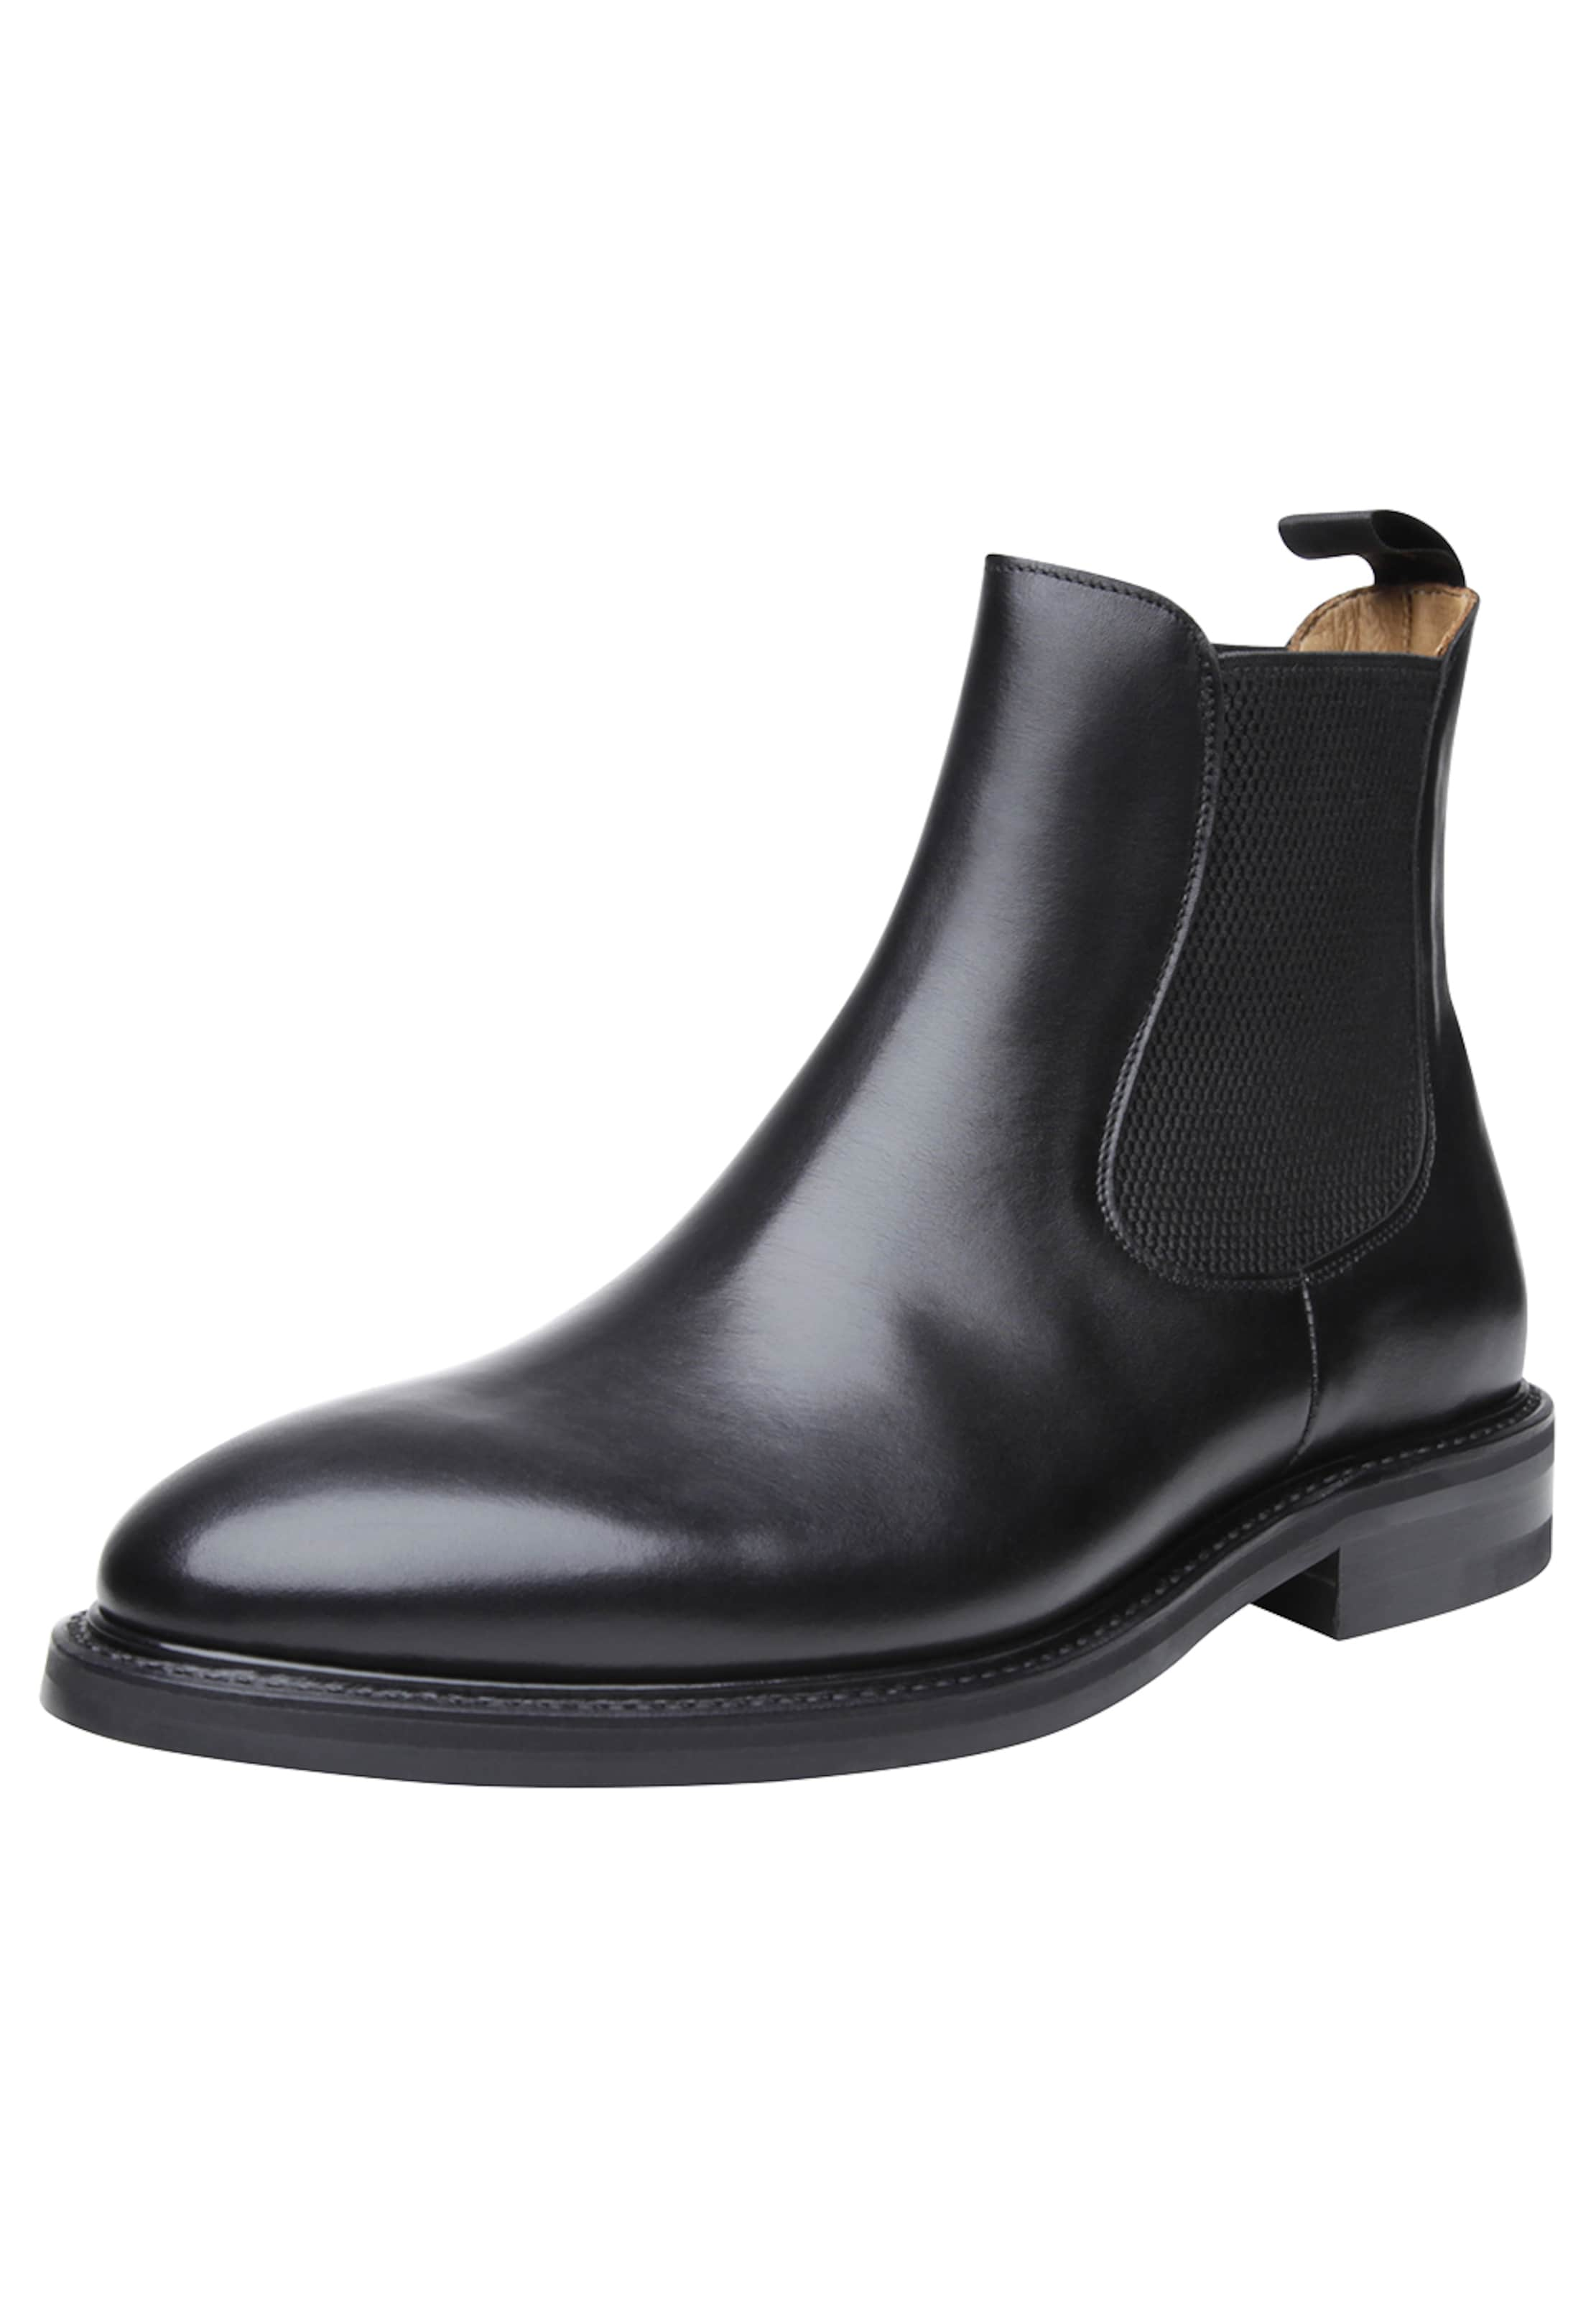 SHOEPASSION | | SHOEPASSION Boots  No. 646 68426c